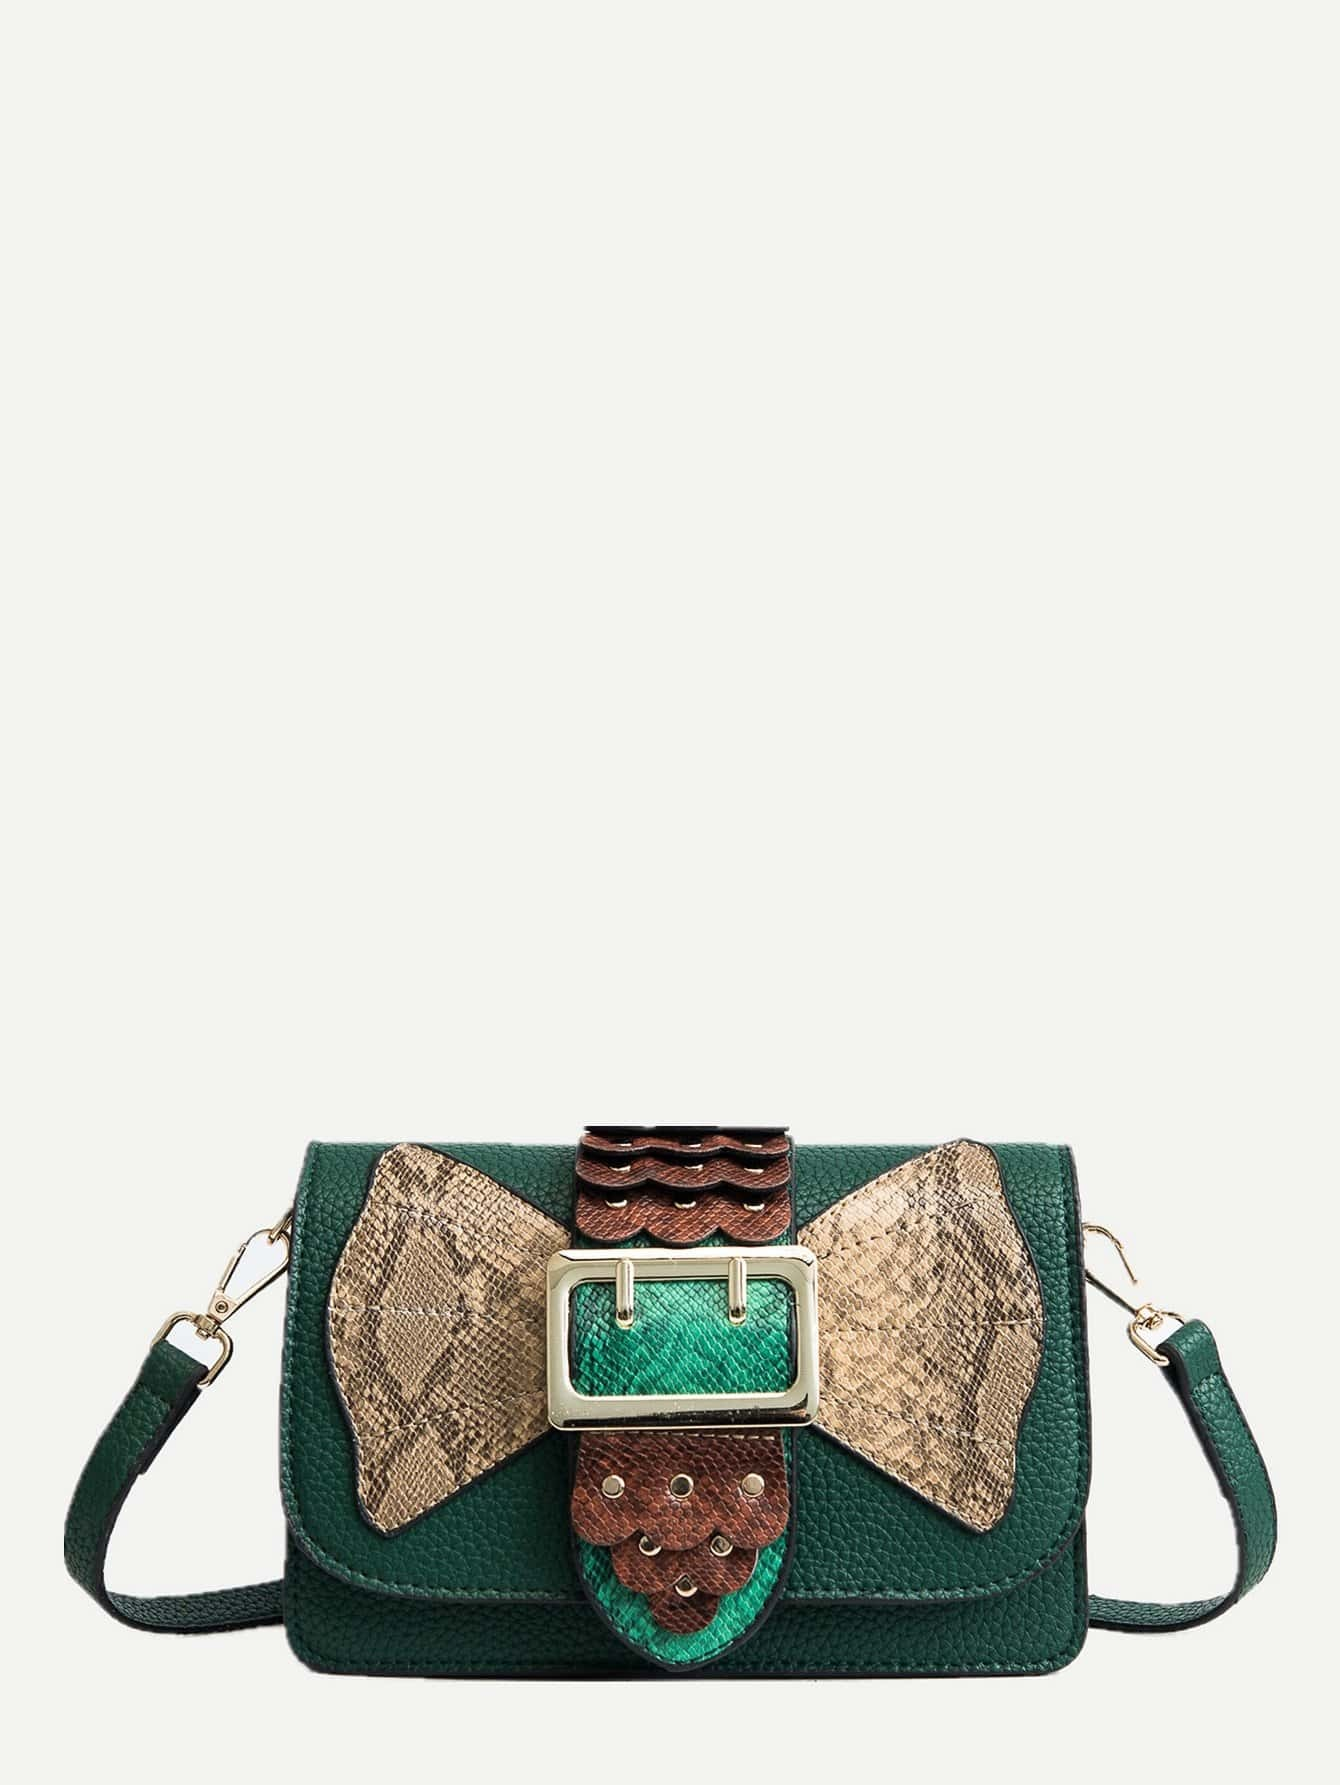 Scalloped Buckle Decor Shoulder Bag жилет мужской baon цвет зеленый b658201 moss размер xxl 54